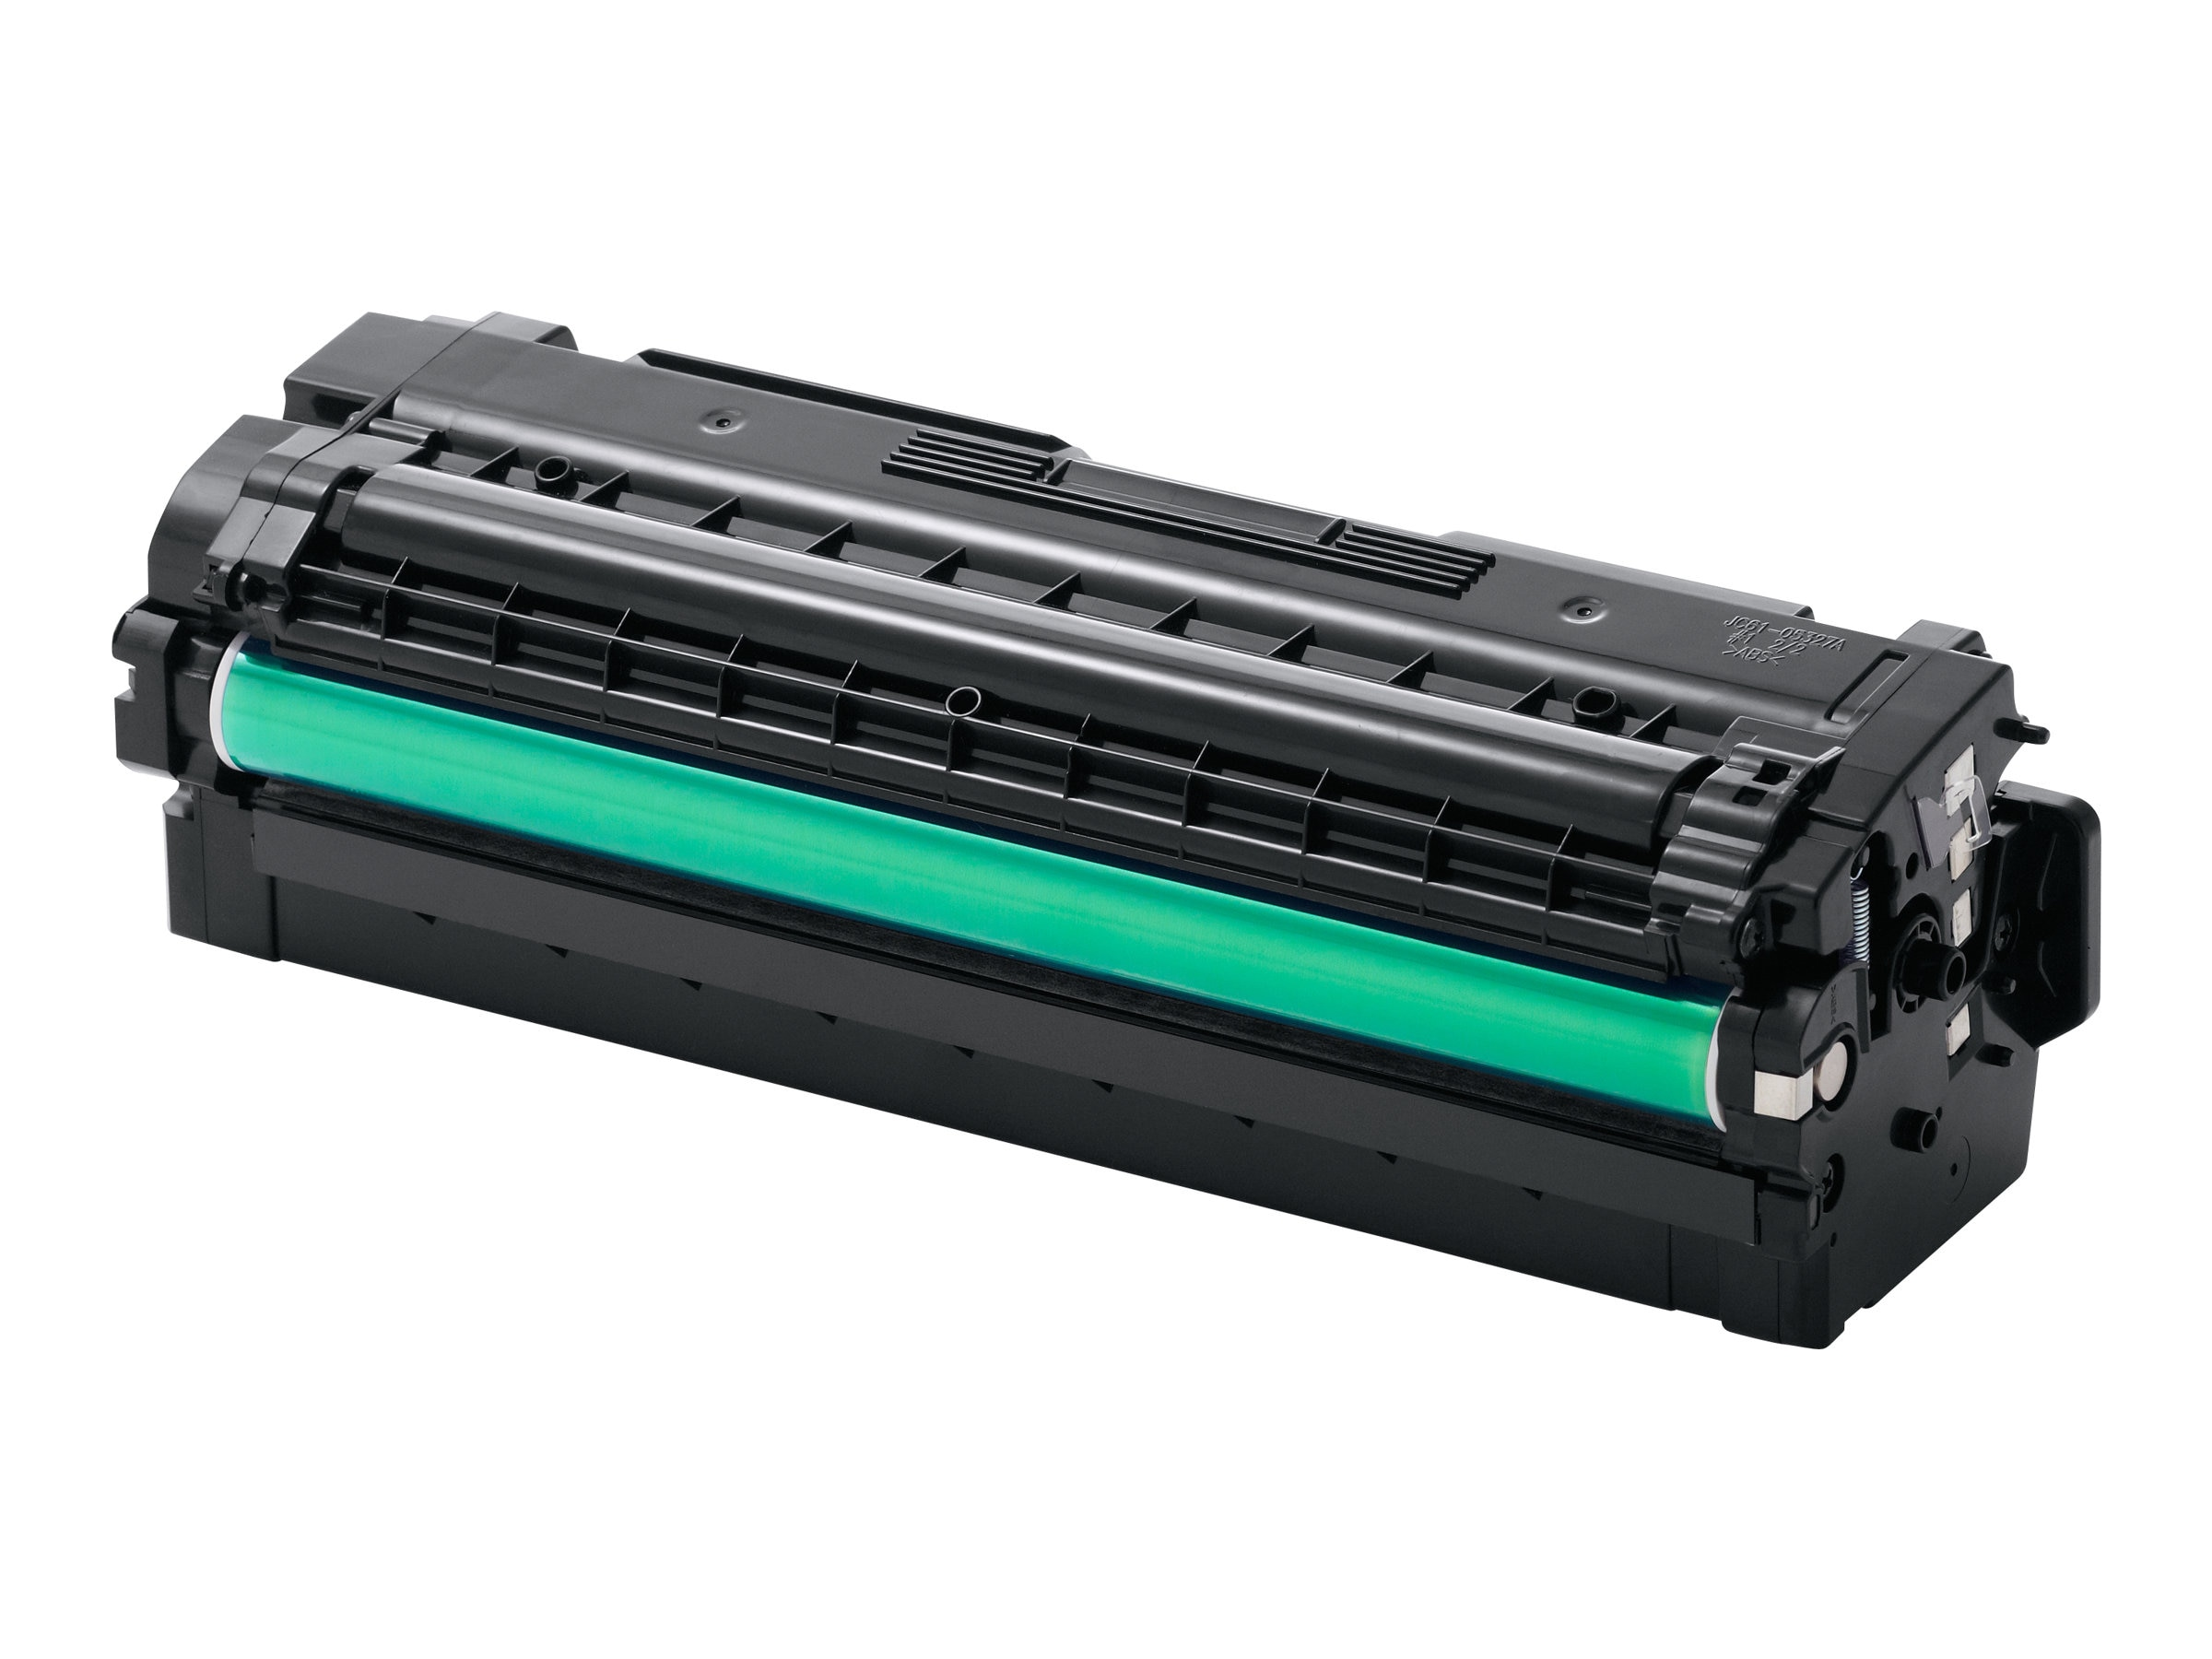 Samsung Magenta High Yield Toner Cartridge for CLX-6260FD & CLX-6260FW Color MFPs & CLP-680ND Color Printer, CLT-M506L